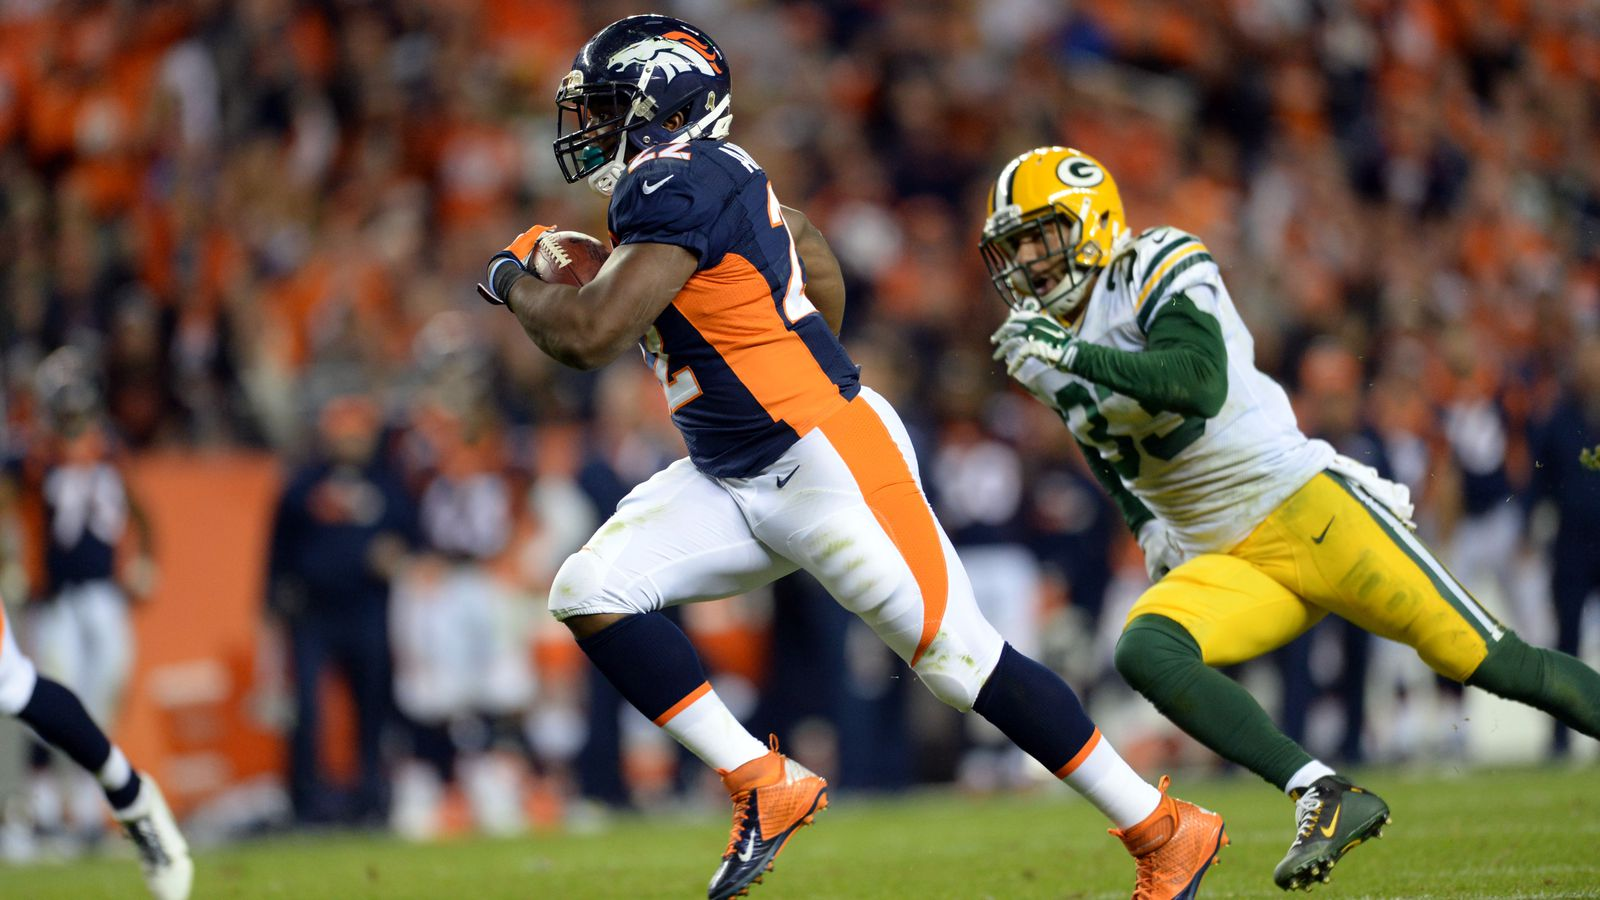 packers vs broncos score 2015 basketball predictions for today